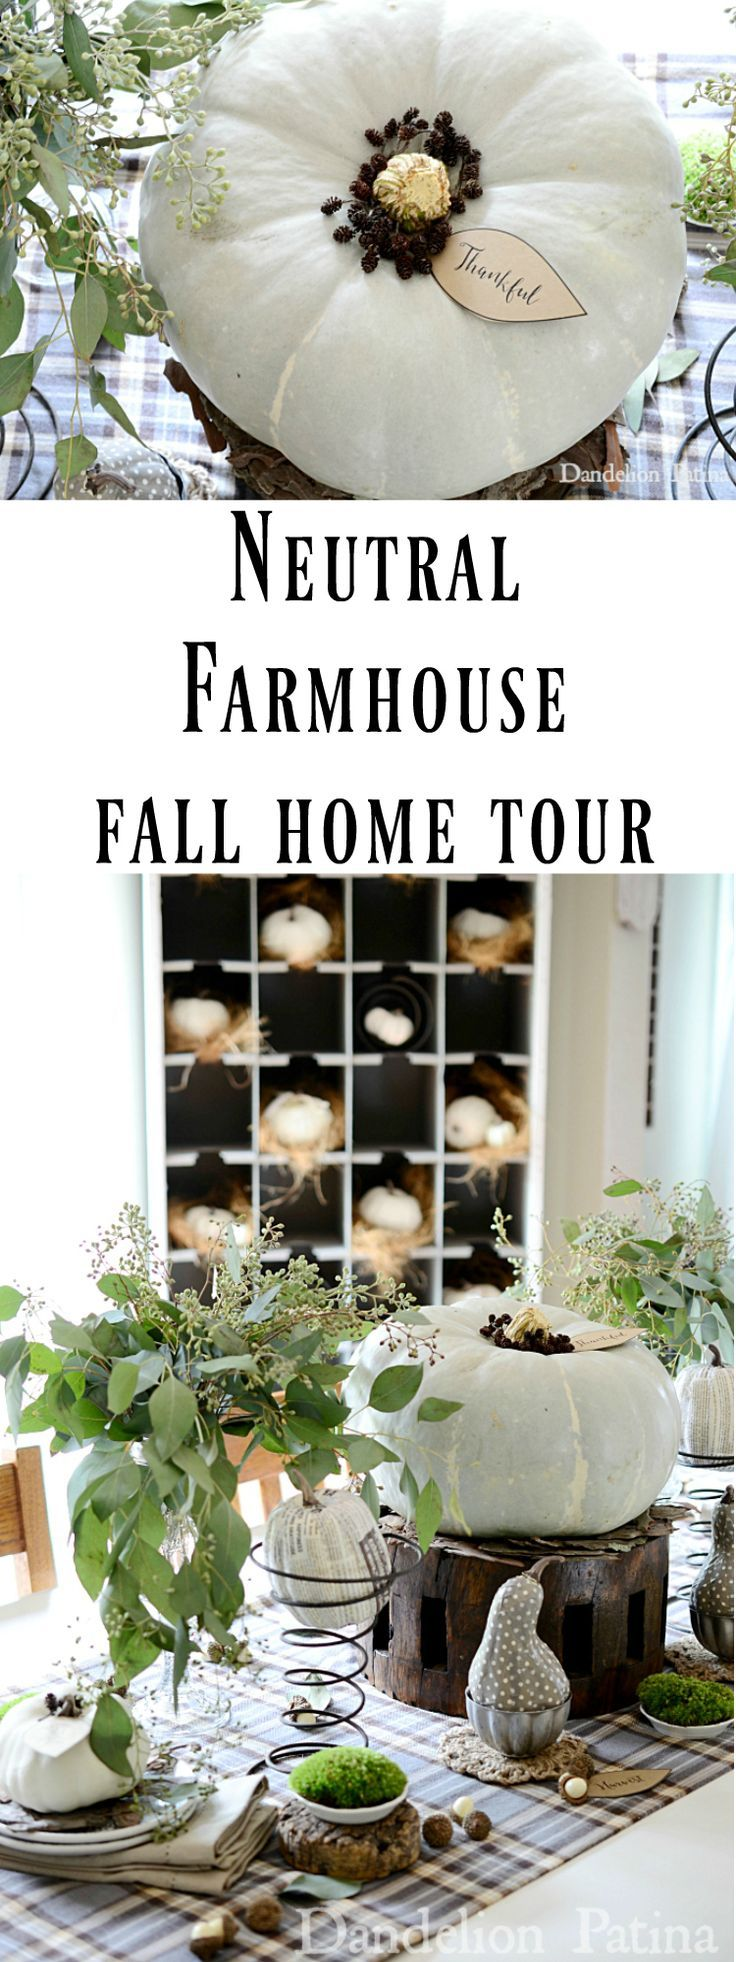 Beautiful farmhouse style fall home tour overflowing with decorating ideas. Check it out.